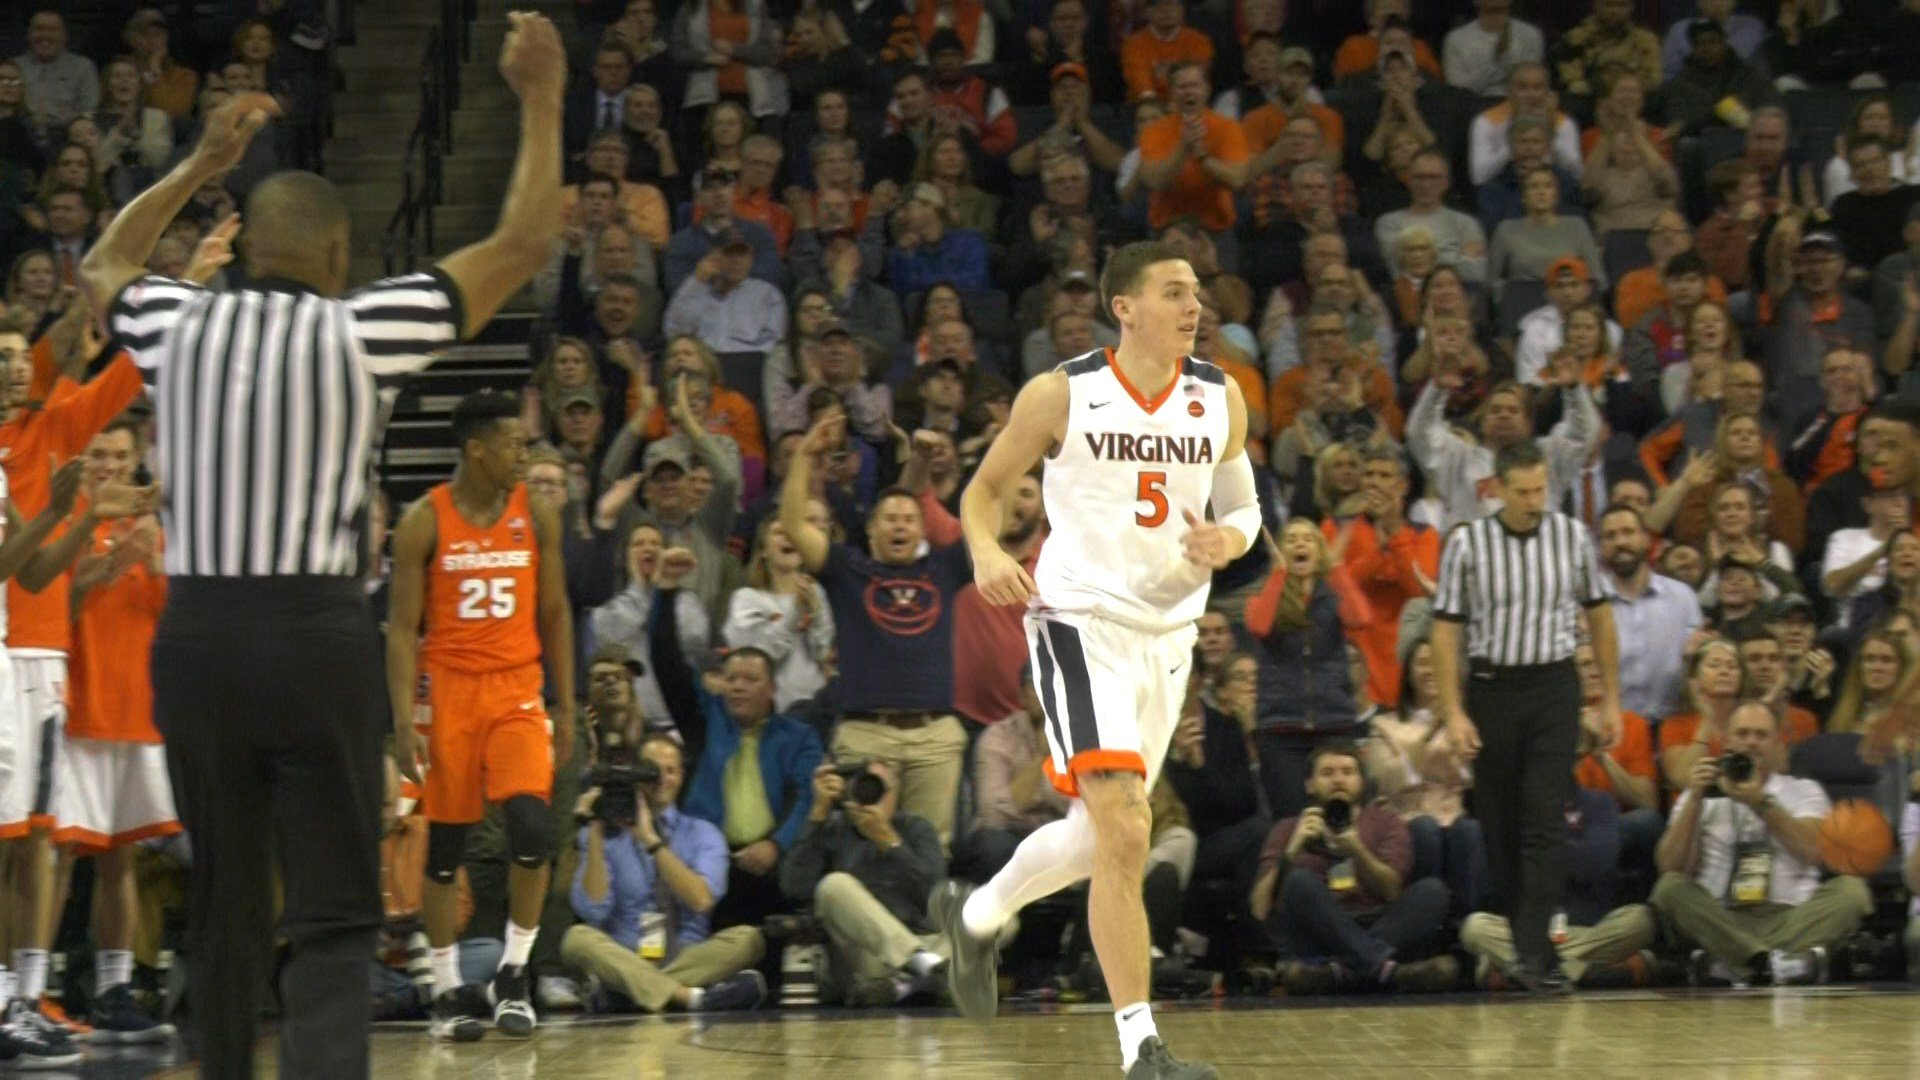 Kyle Guy scored a game high 22 points, while knocking down five three-pointers